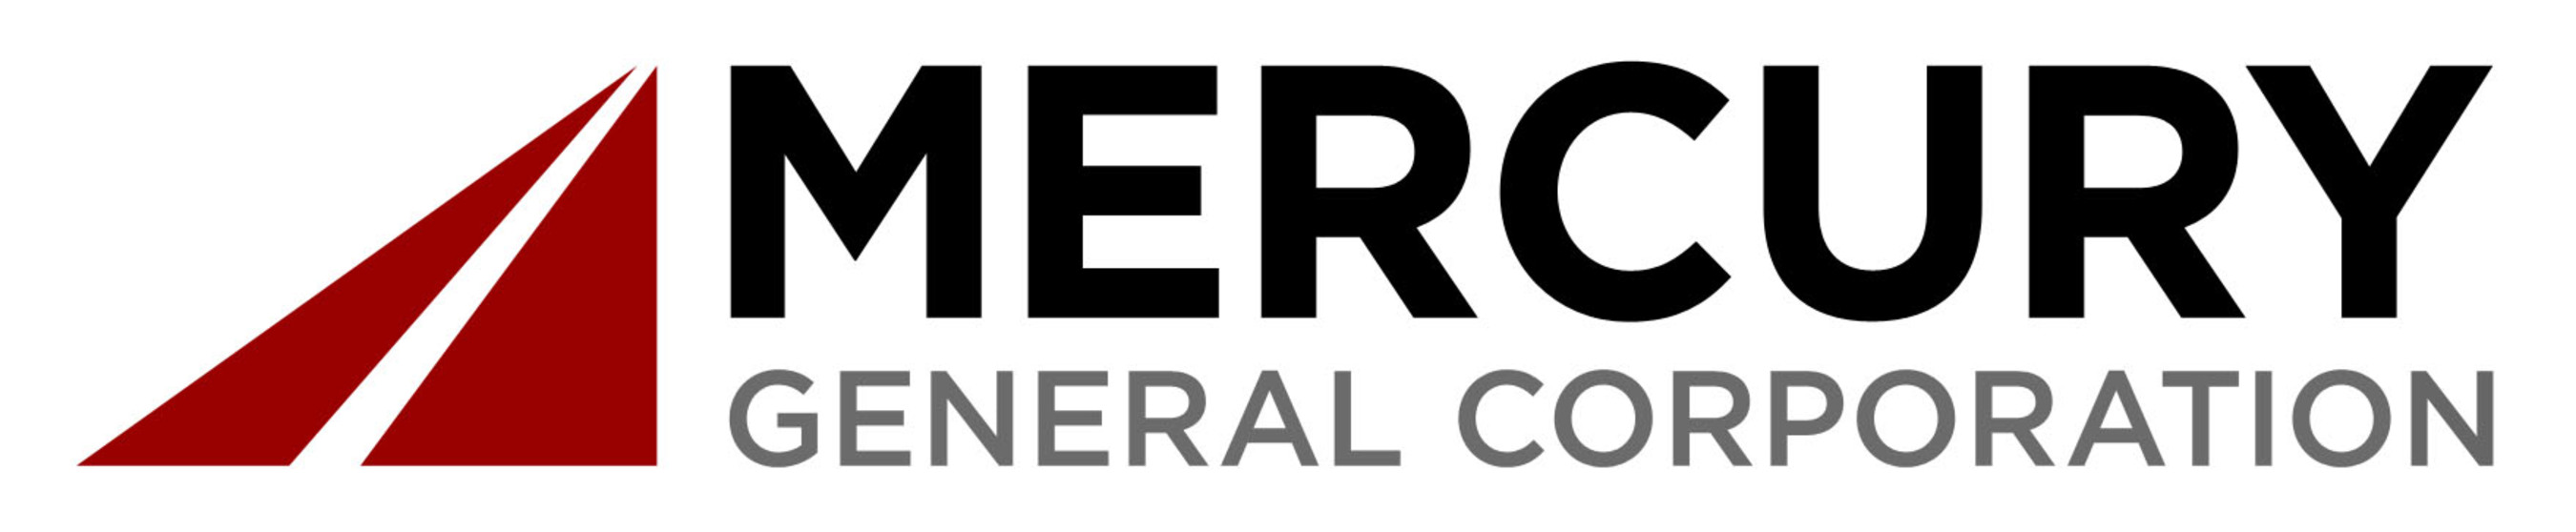 Mercury General Corporation logo (PRNewsFoto/Mercury General Corporation) (PRNewsFoto/Mercury General ...